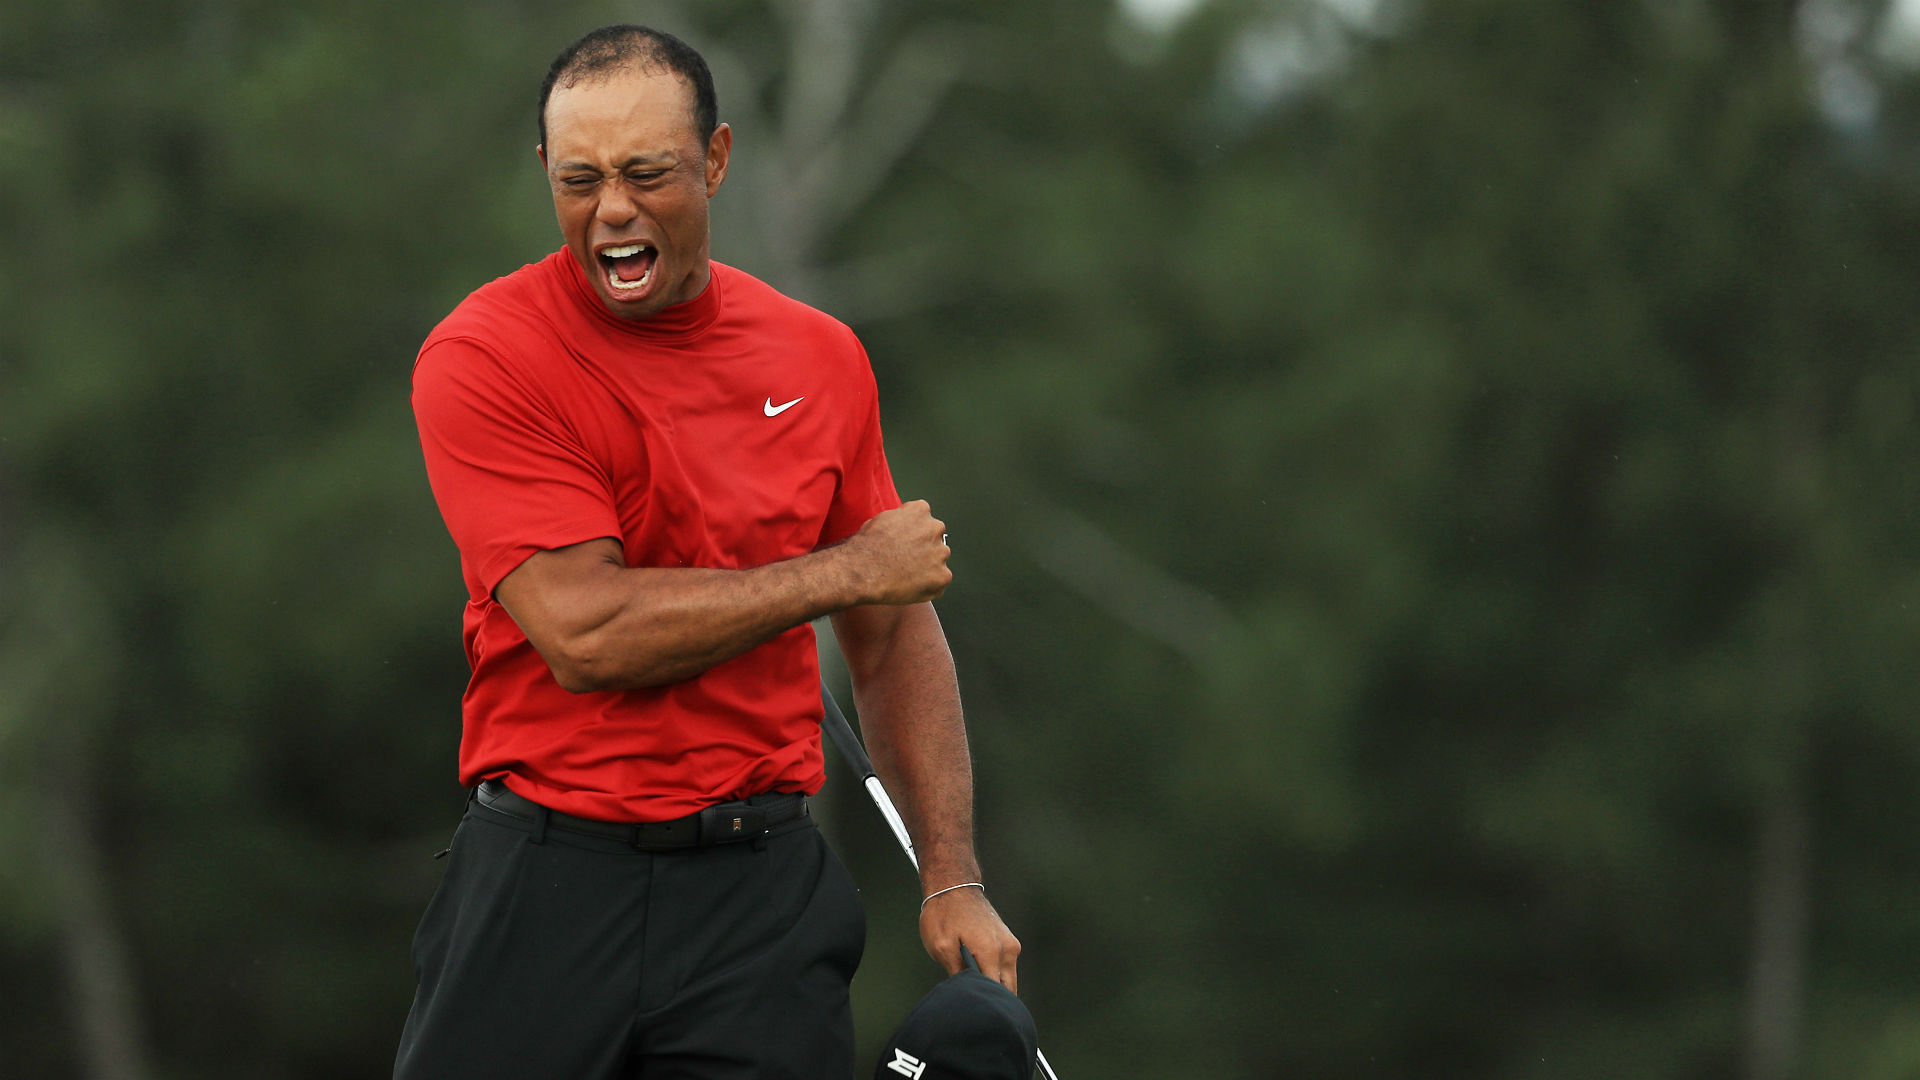 Next 10-part sports documentary? Tiger Woods is the only right answer 1